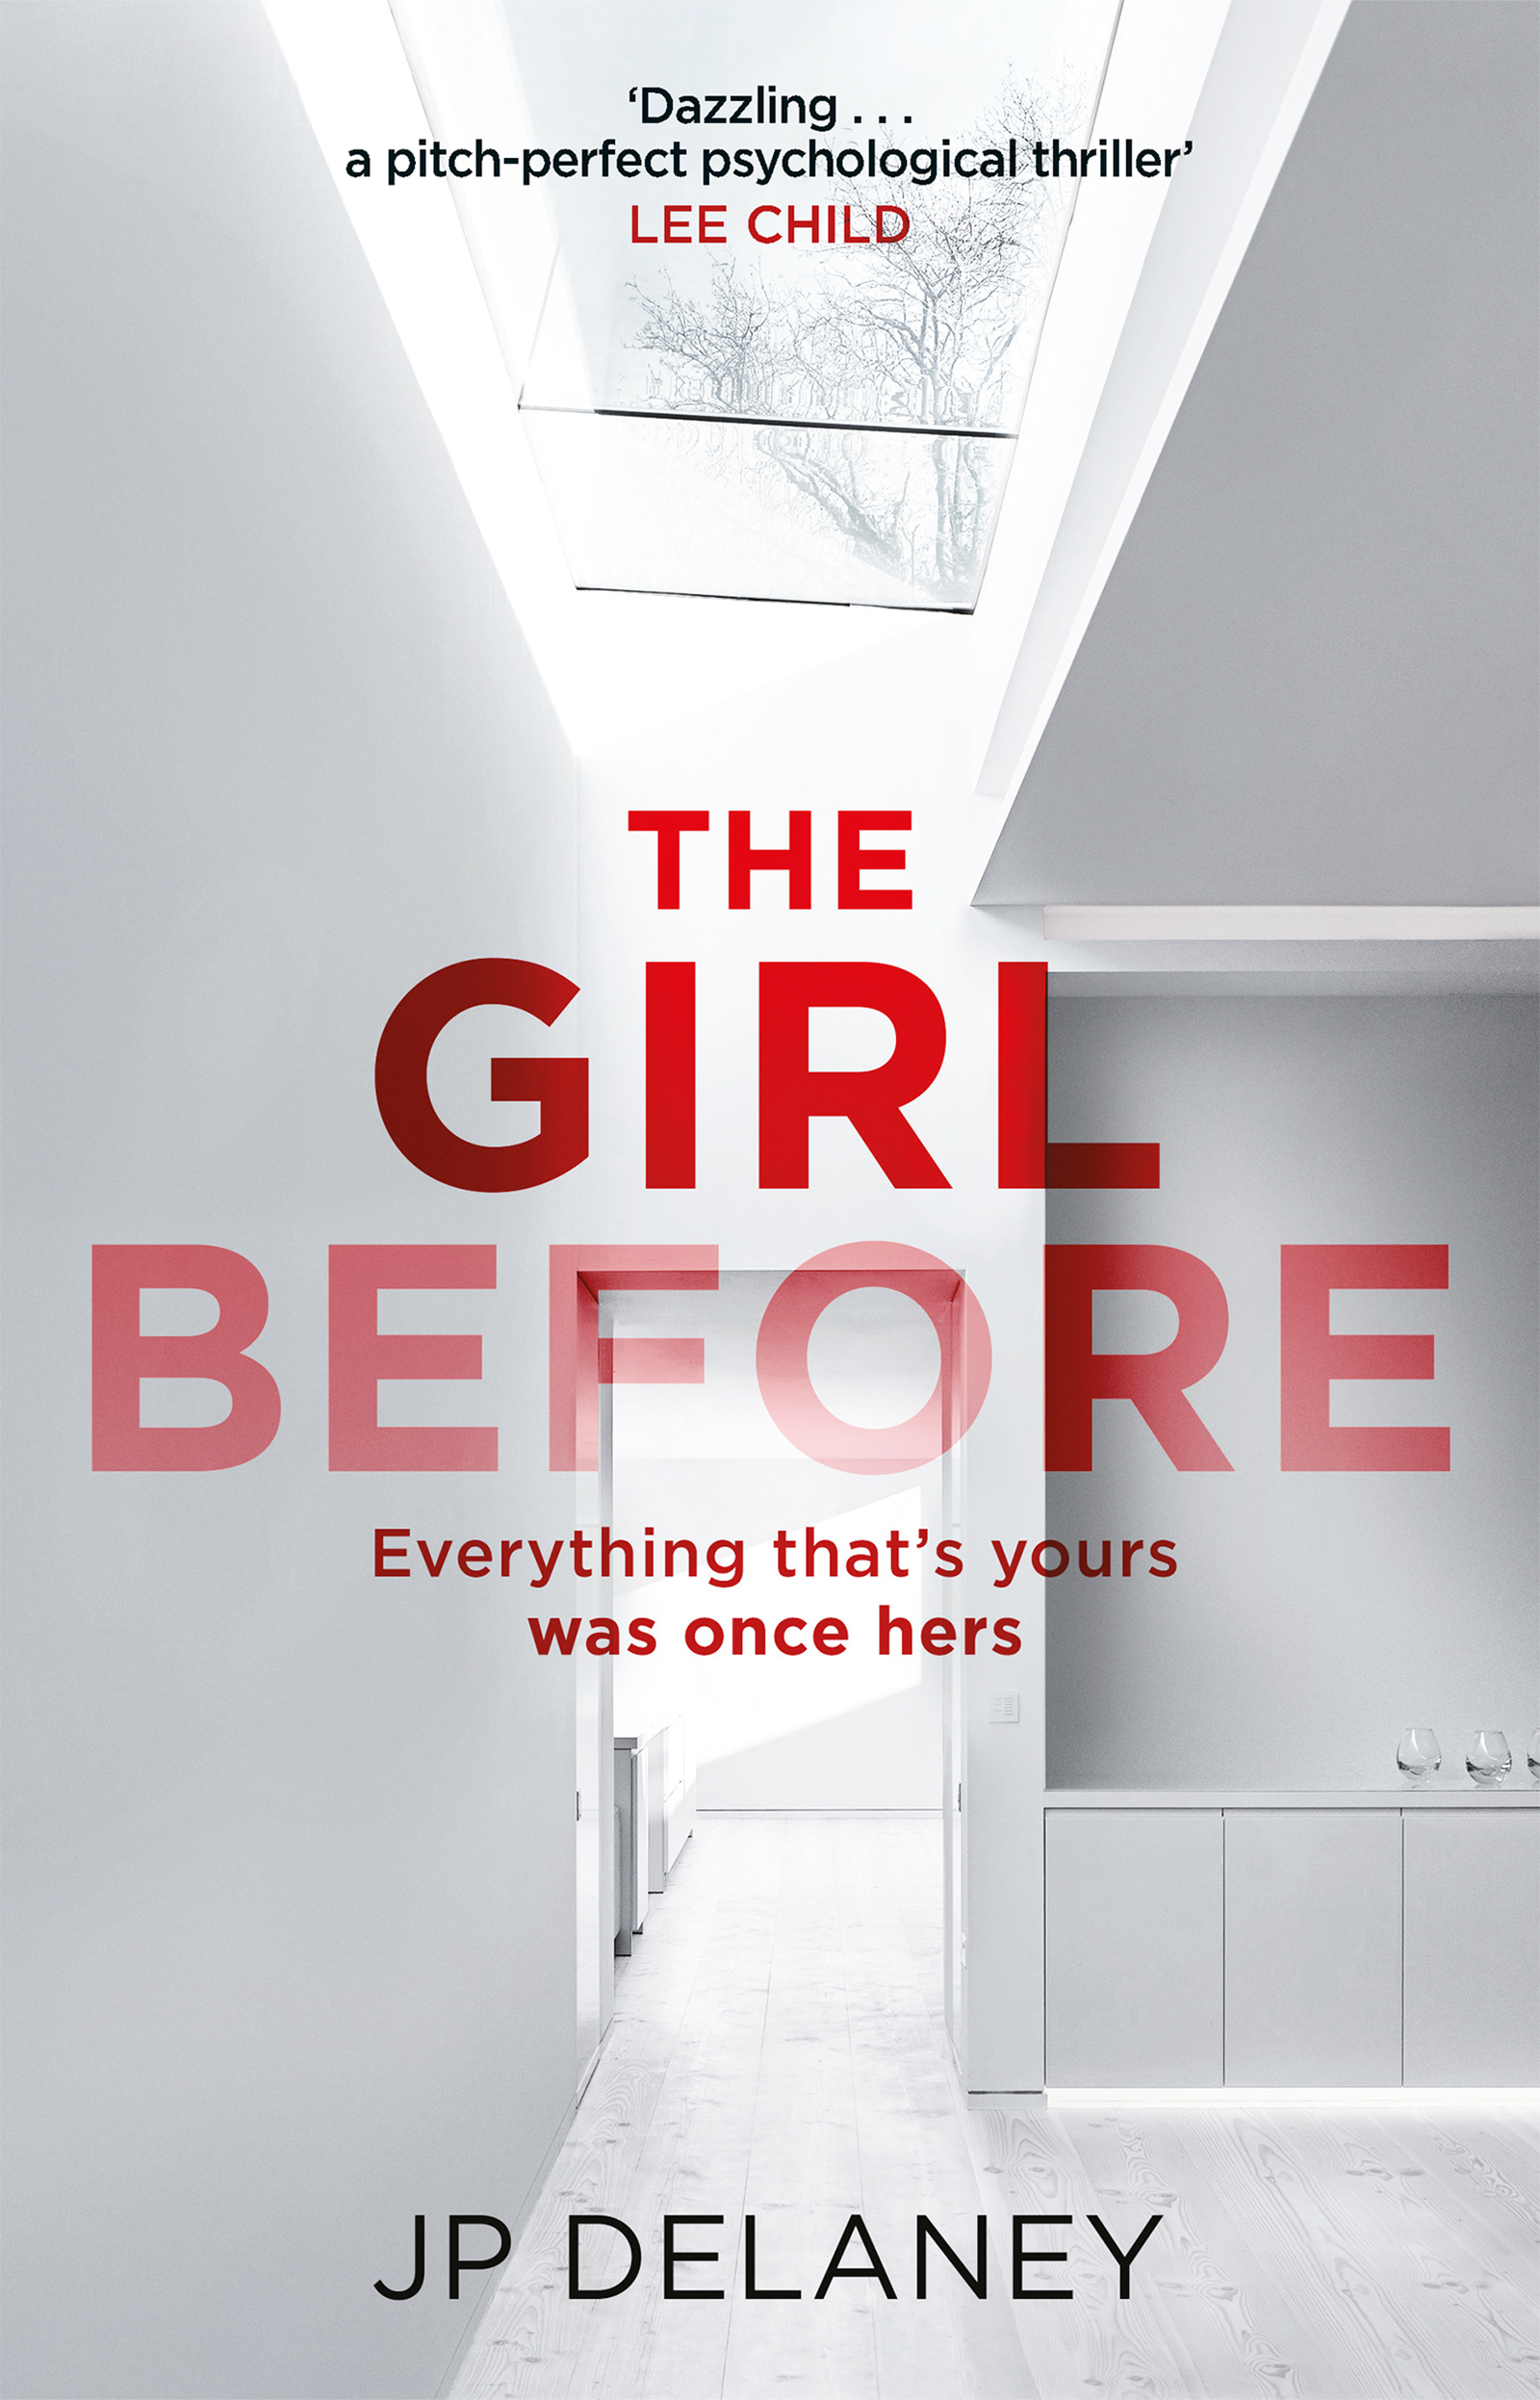 The Girl Beforeby J. P. Delaney